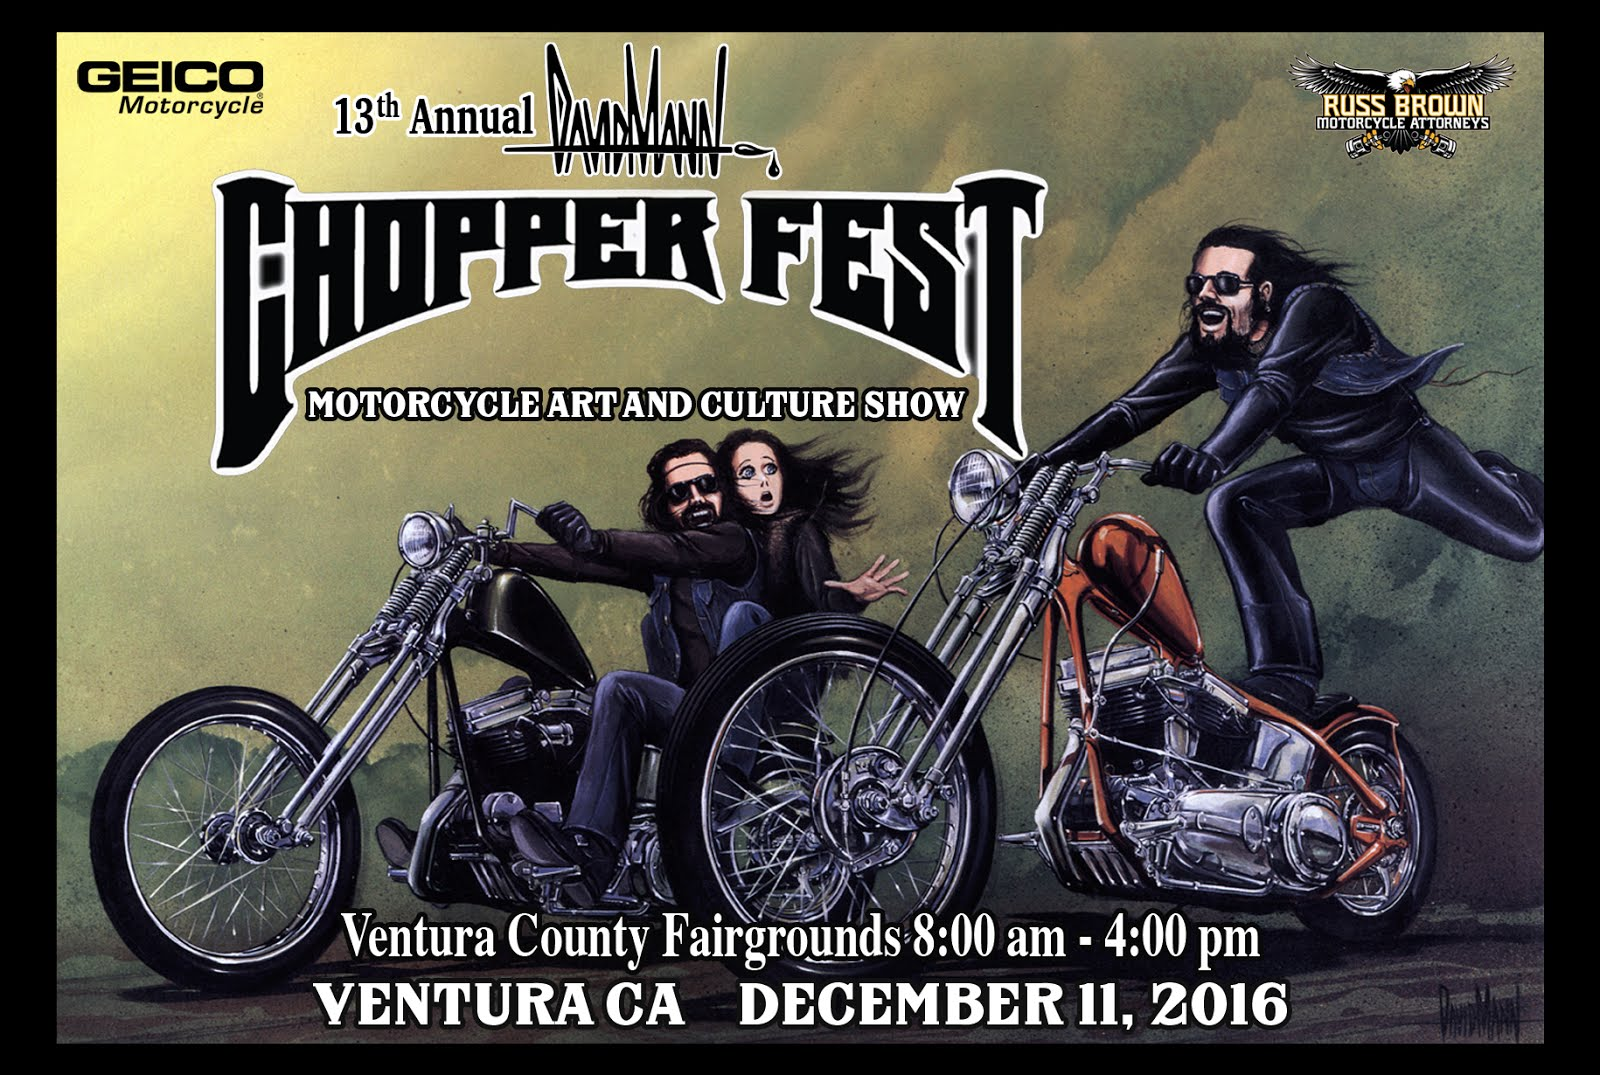 13th Annual David Mann Chopper Fest